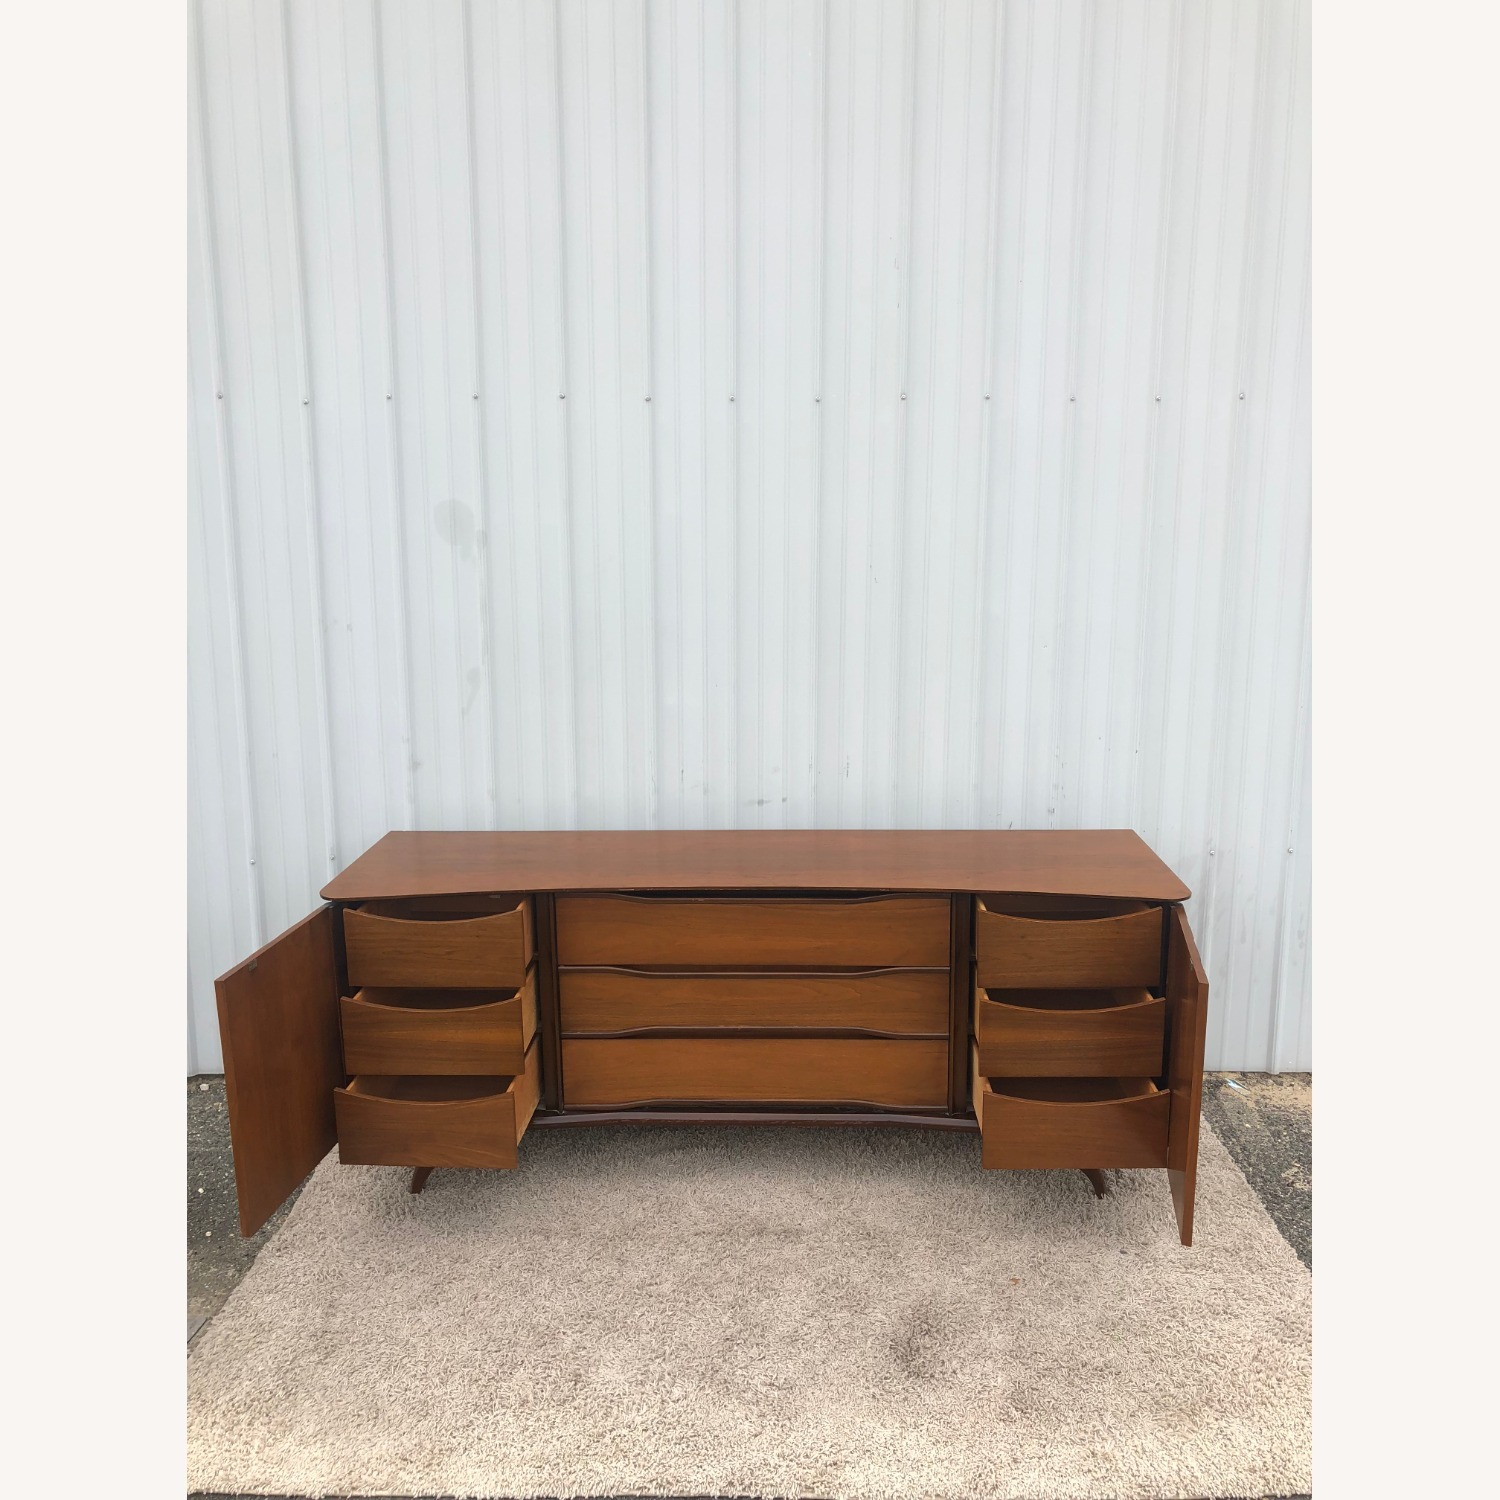 Mid Century Lowboy Dresser with Brasss Accents - image-12